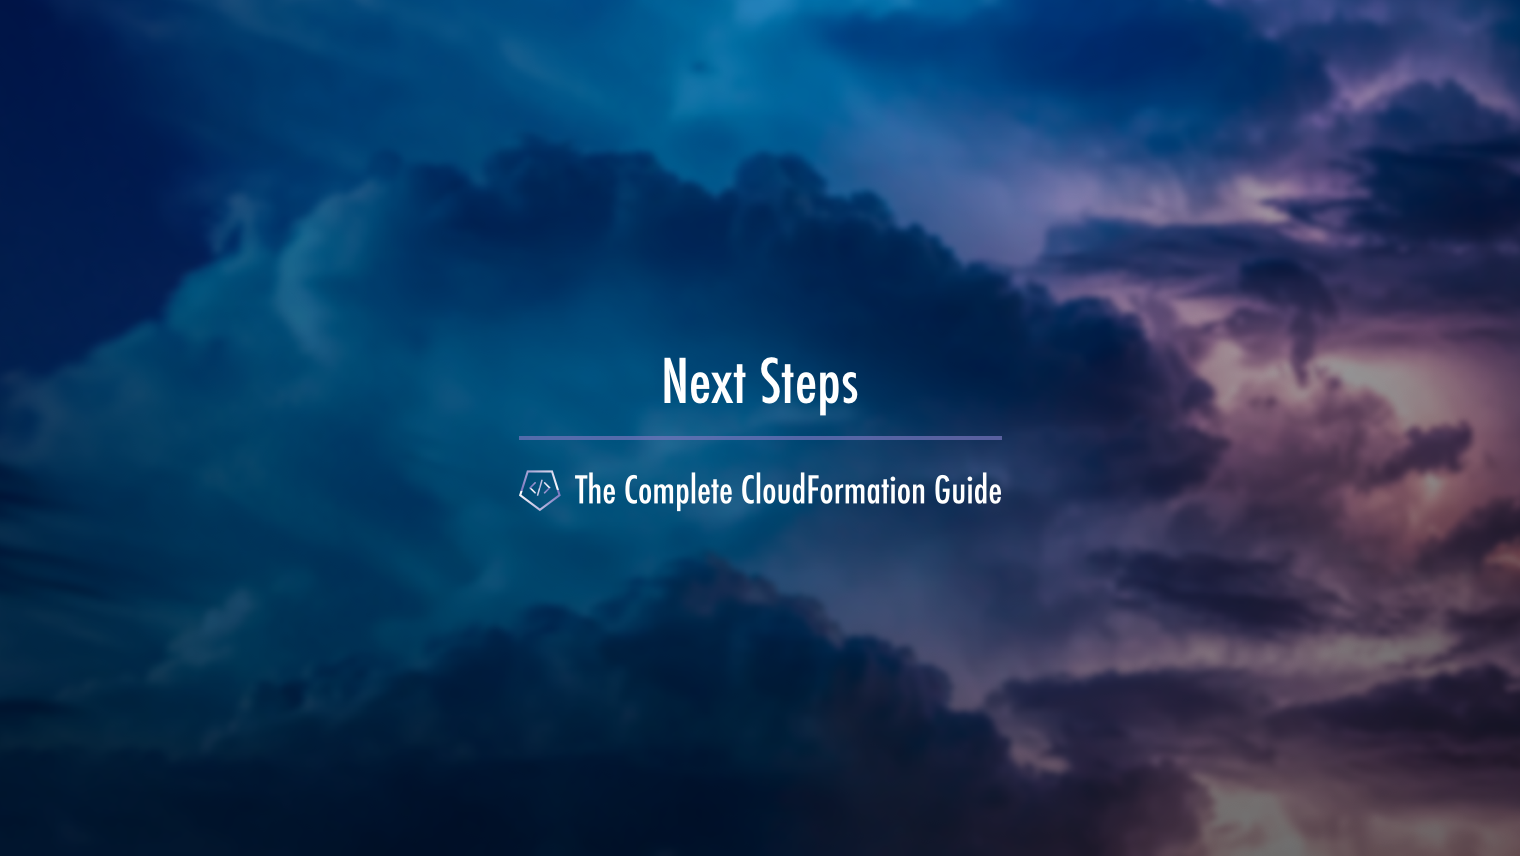 The Complete CloudFormation Guide The Best Next Steps to Take from Here to learn more AWS and CloudFormation